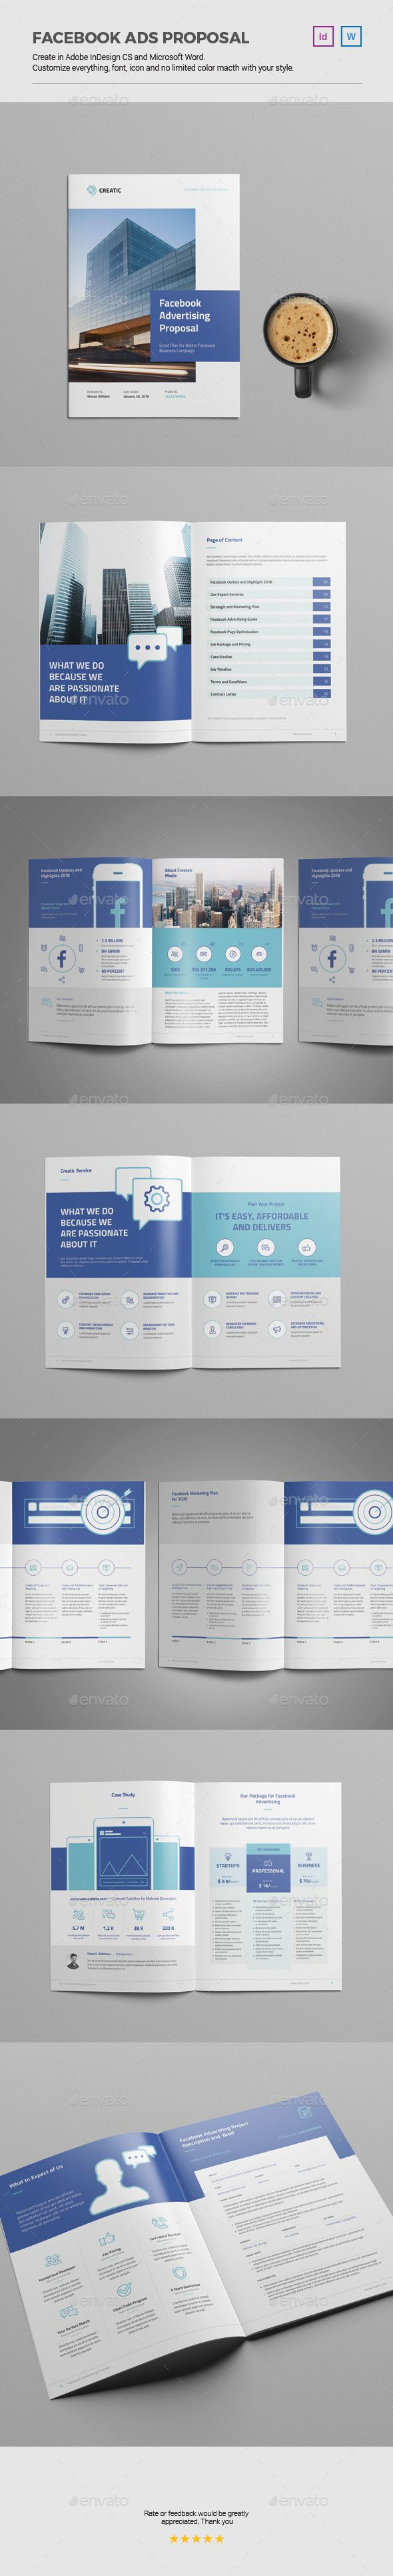 519 best Proposal u0026 Invoice Templates